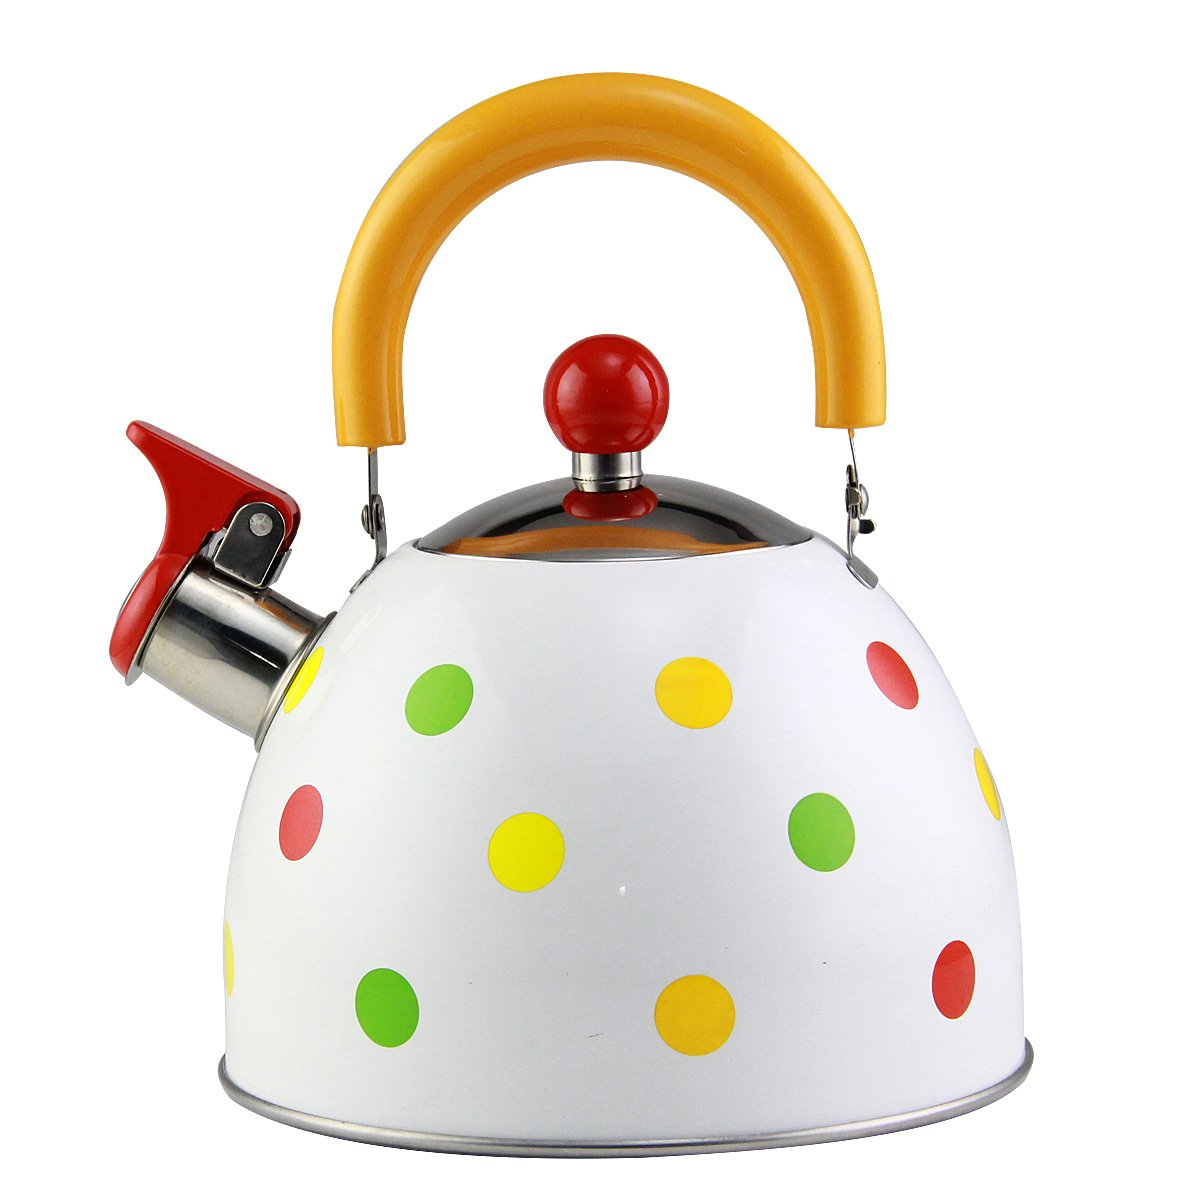 Riwendell 2.7 Quart Whistling Color Dot Tea Kettle Stainless Steel StoveTop Teapot (GS-04102-2.5L) by Riwendell